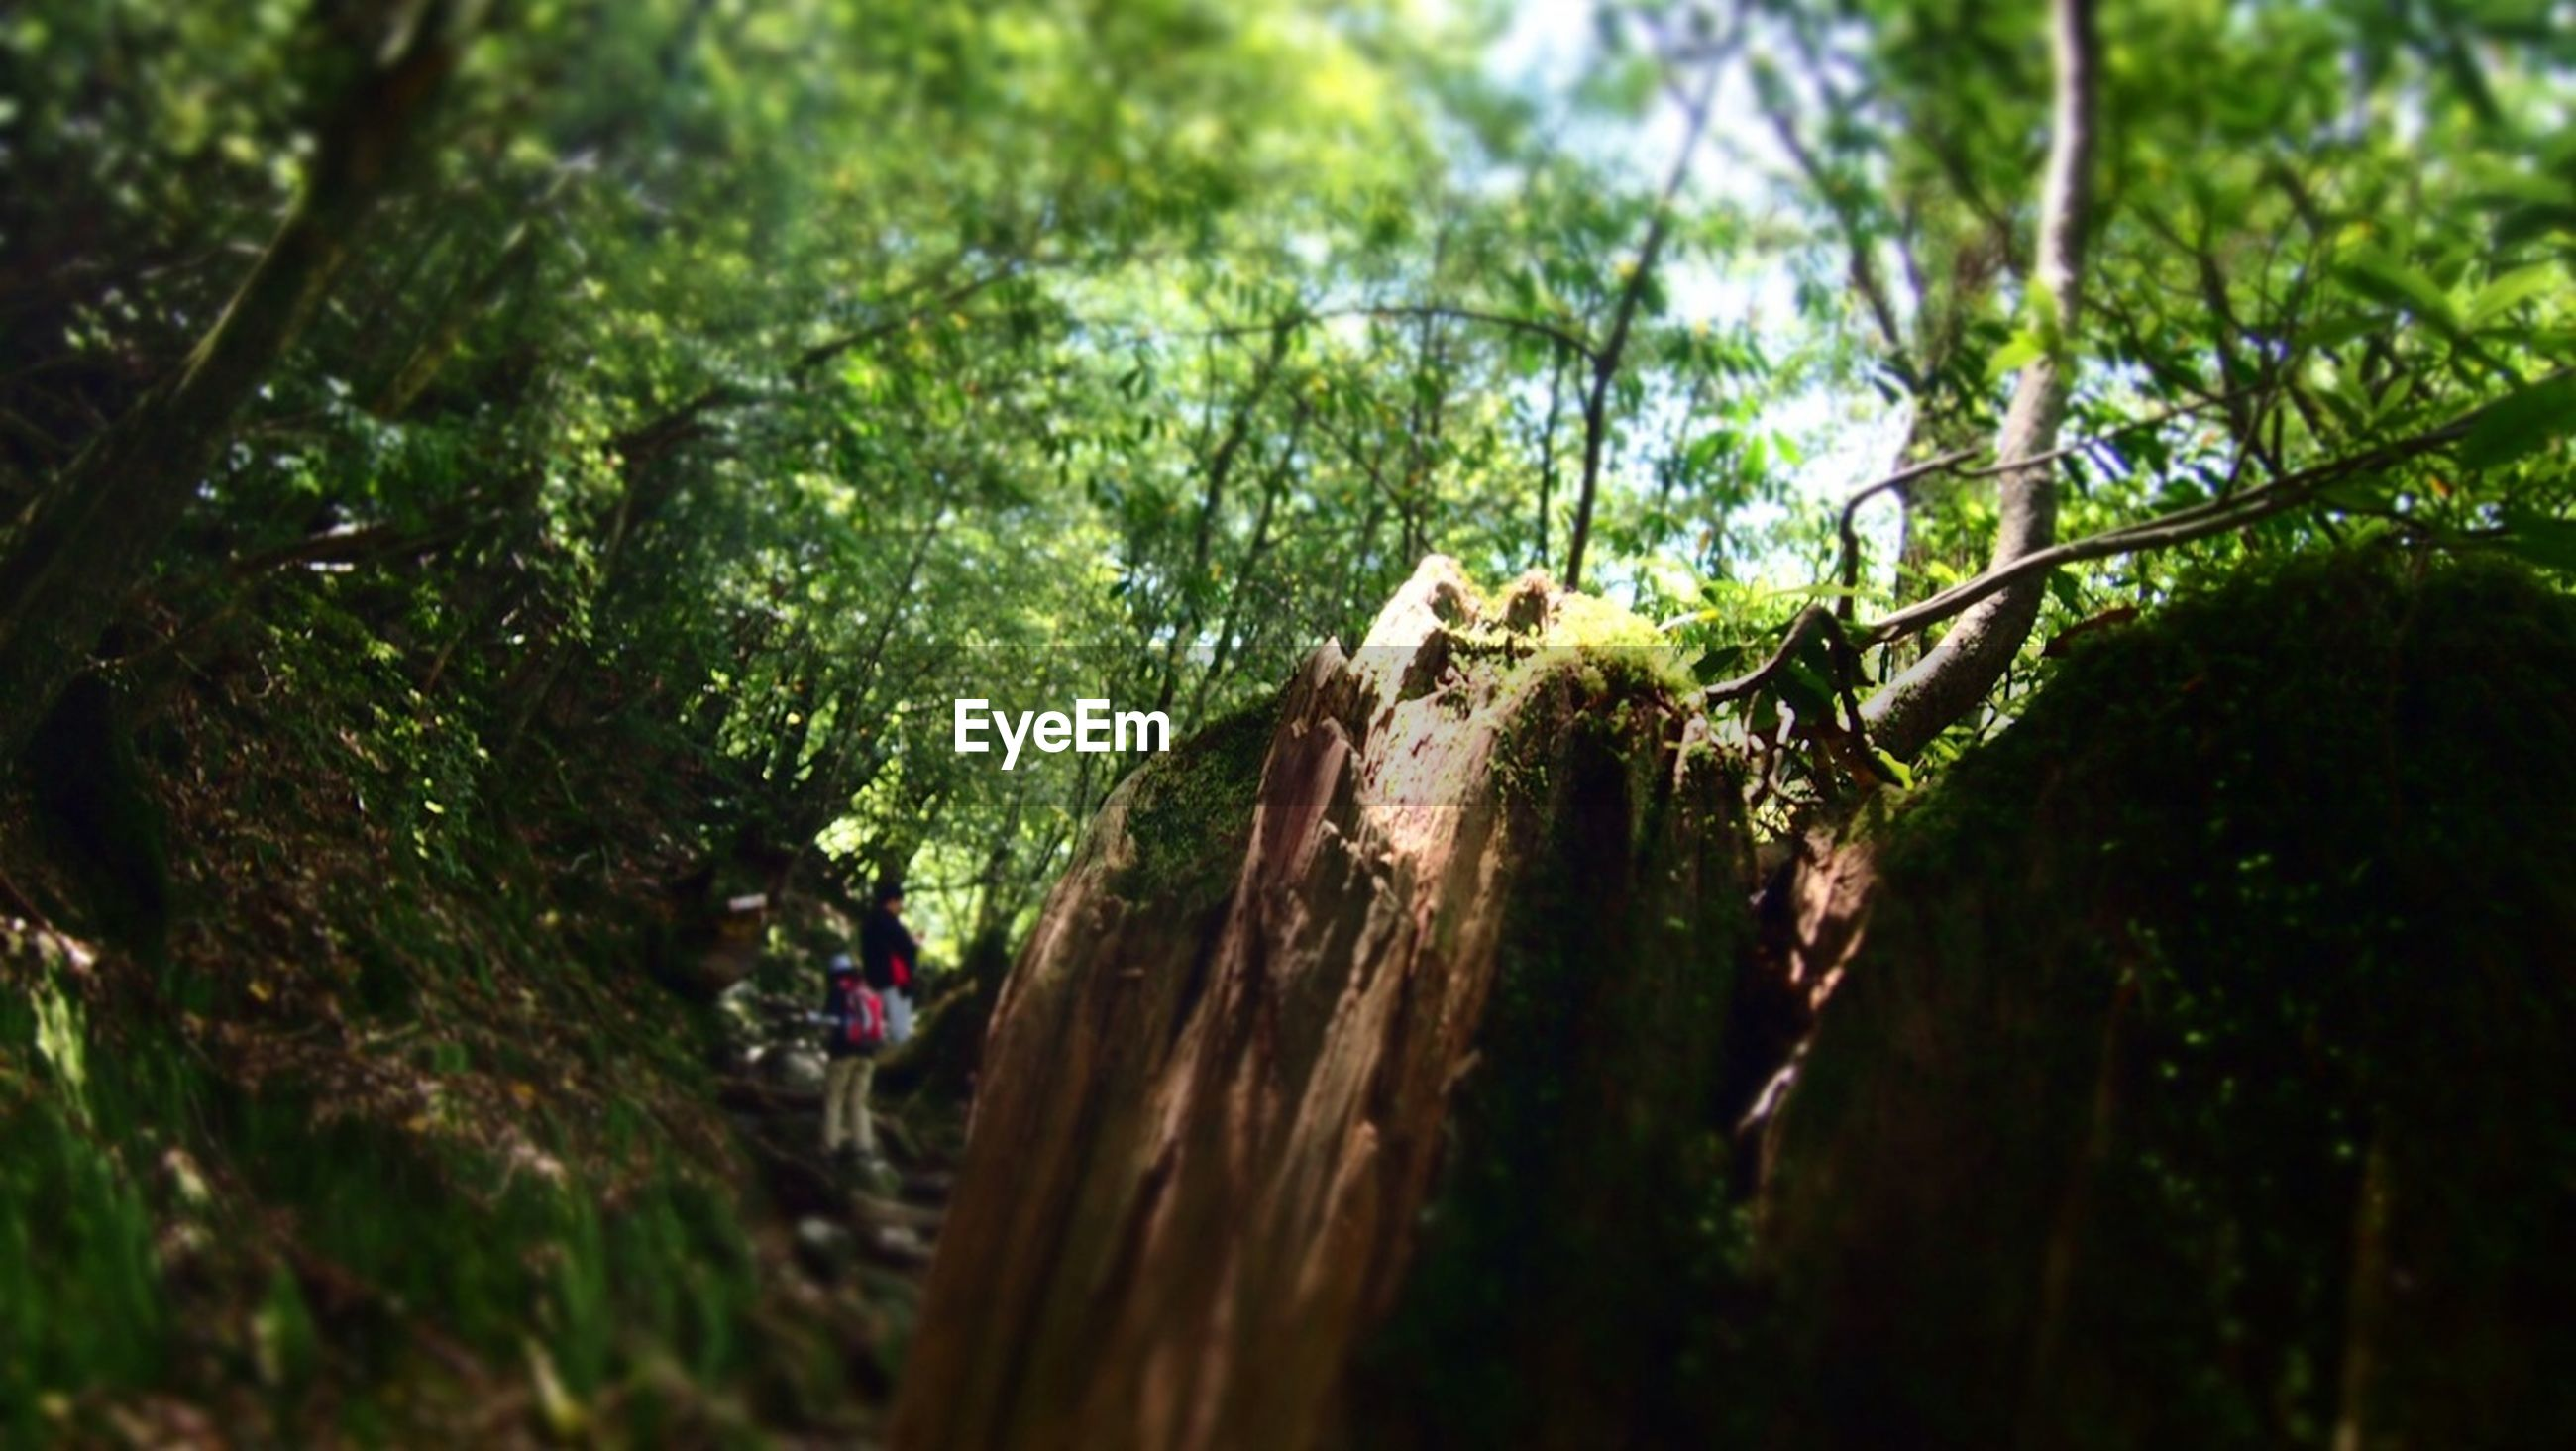 tree, growth, forest, leisure activity, tree trunk, nature, green color, lifestyles, men, walking, day, plant, outdoors, rear view, selective focus, sunlight, person, tranquility, low angle view